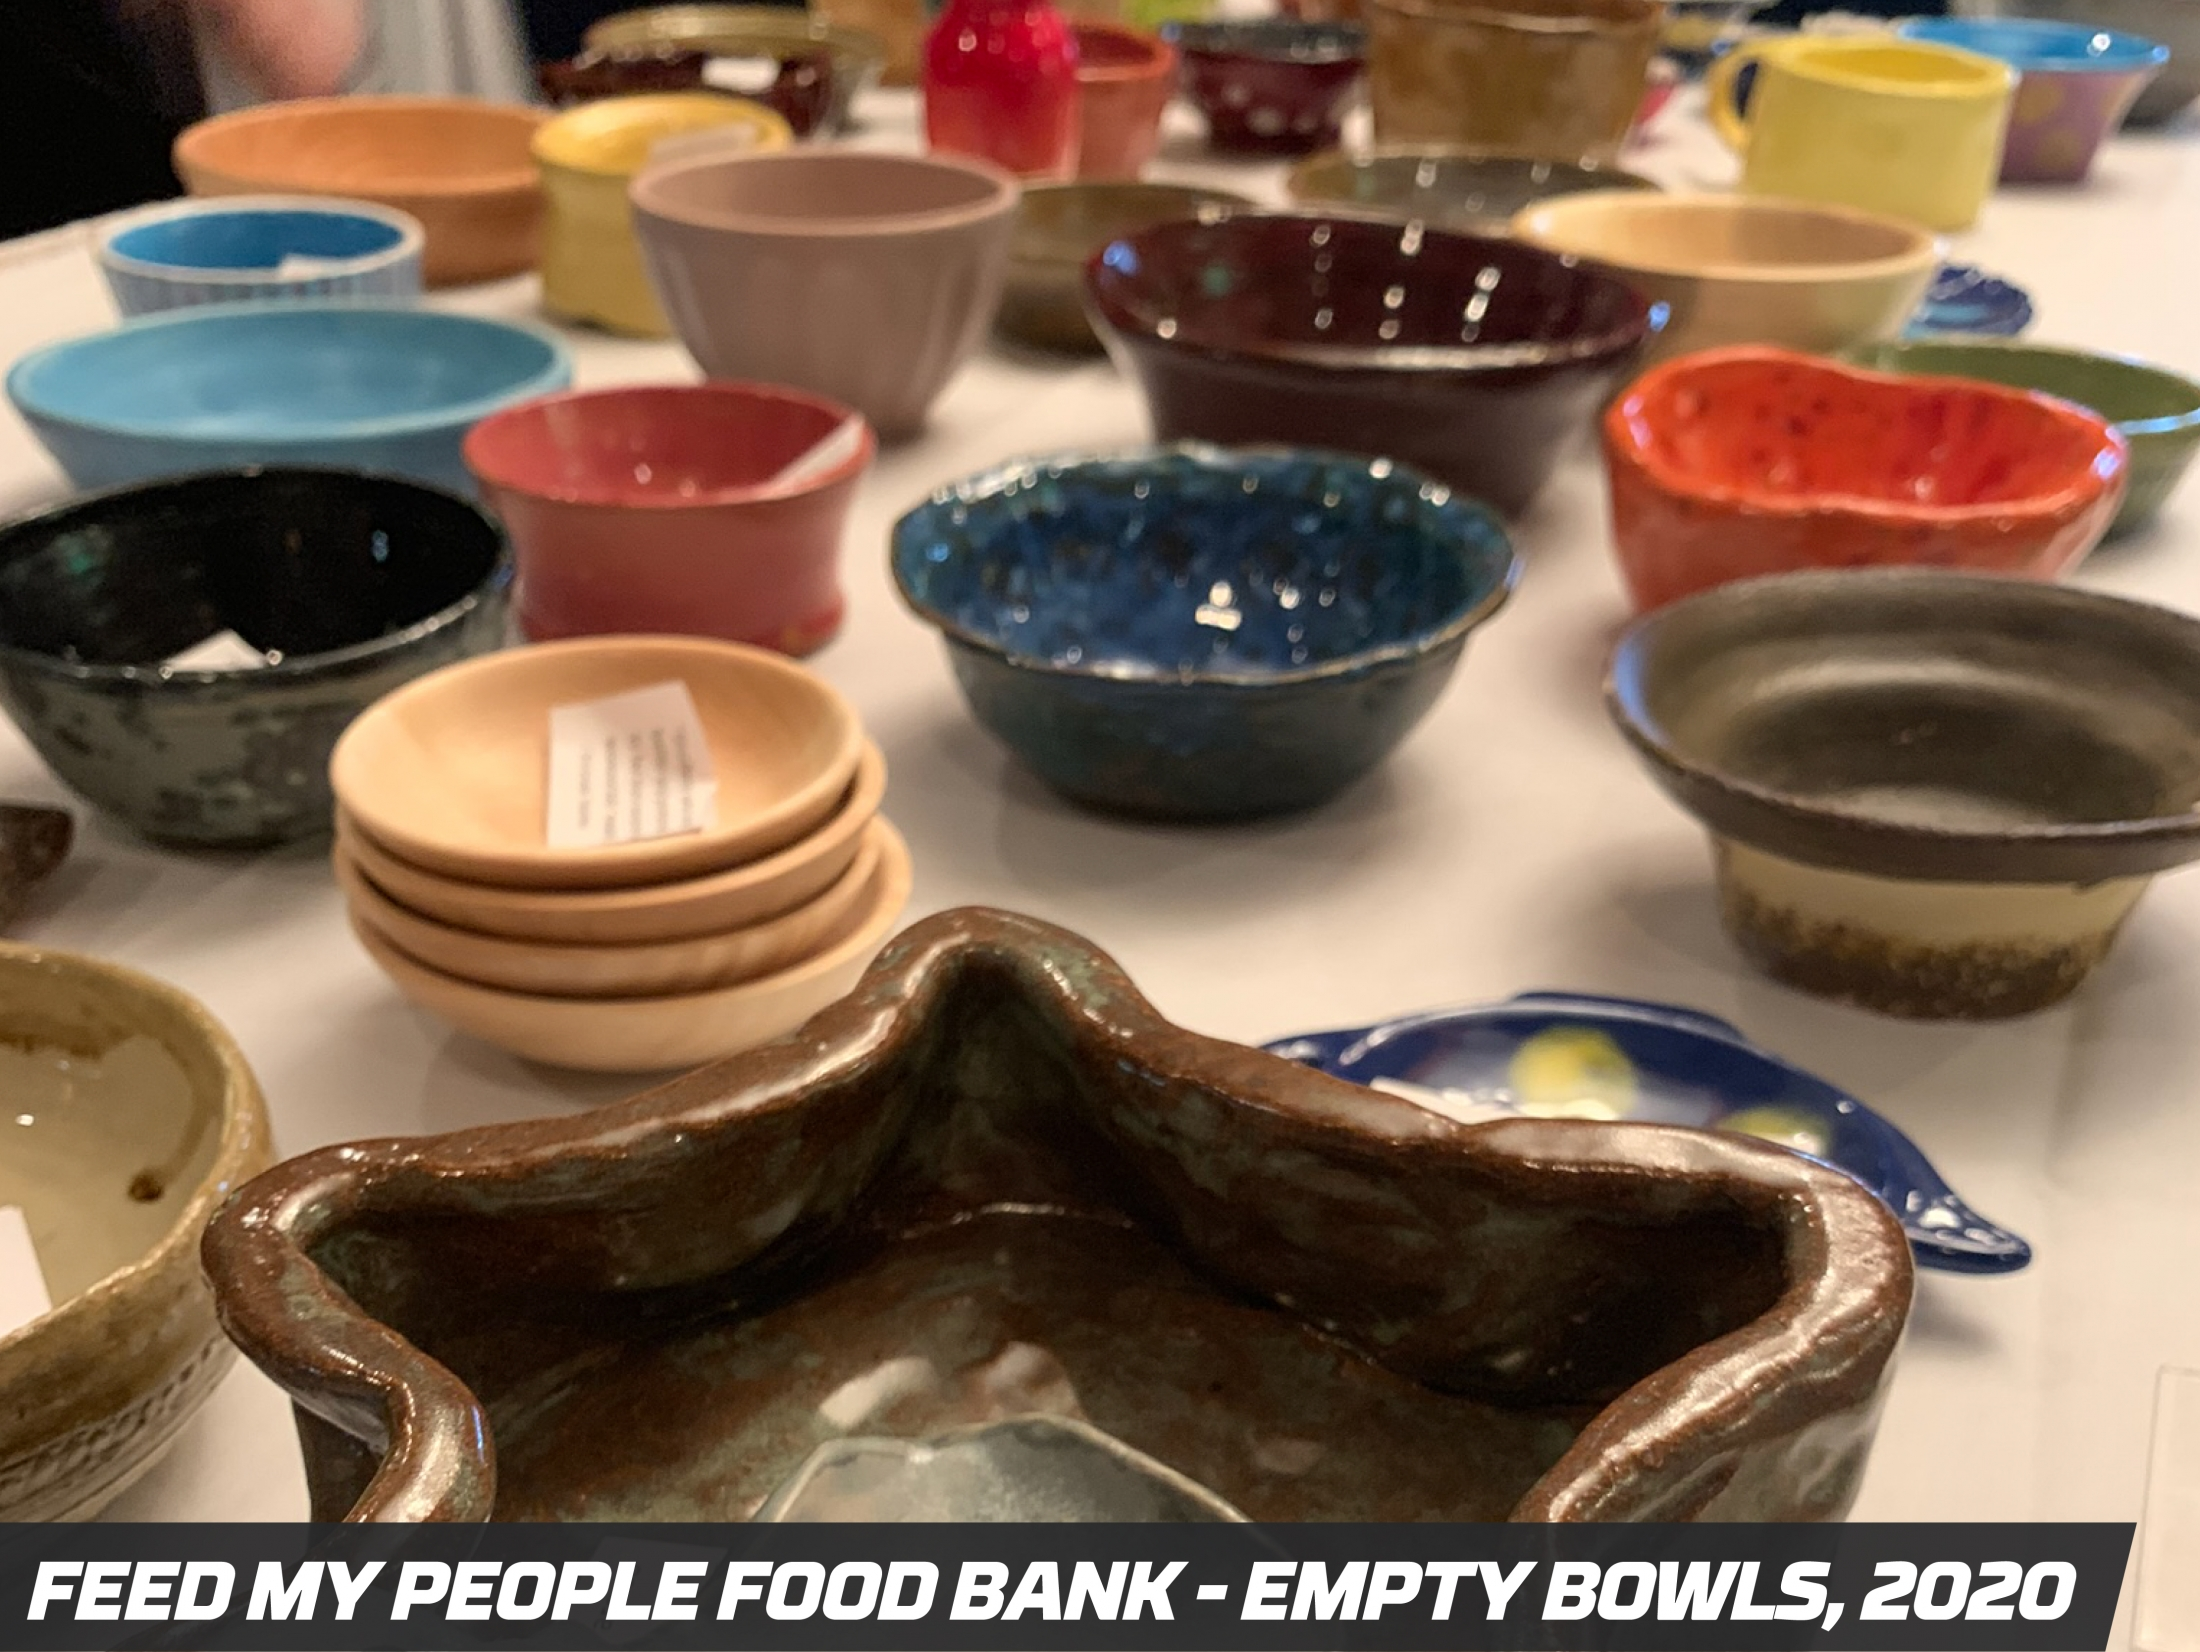 Precision Pipeline Community Involvement: Feed My People Food Bank - Empty Bowls 2020